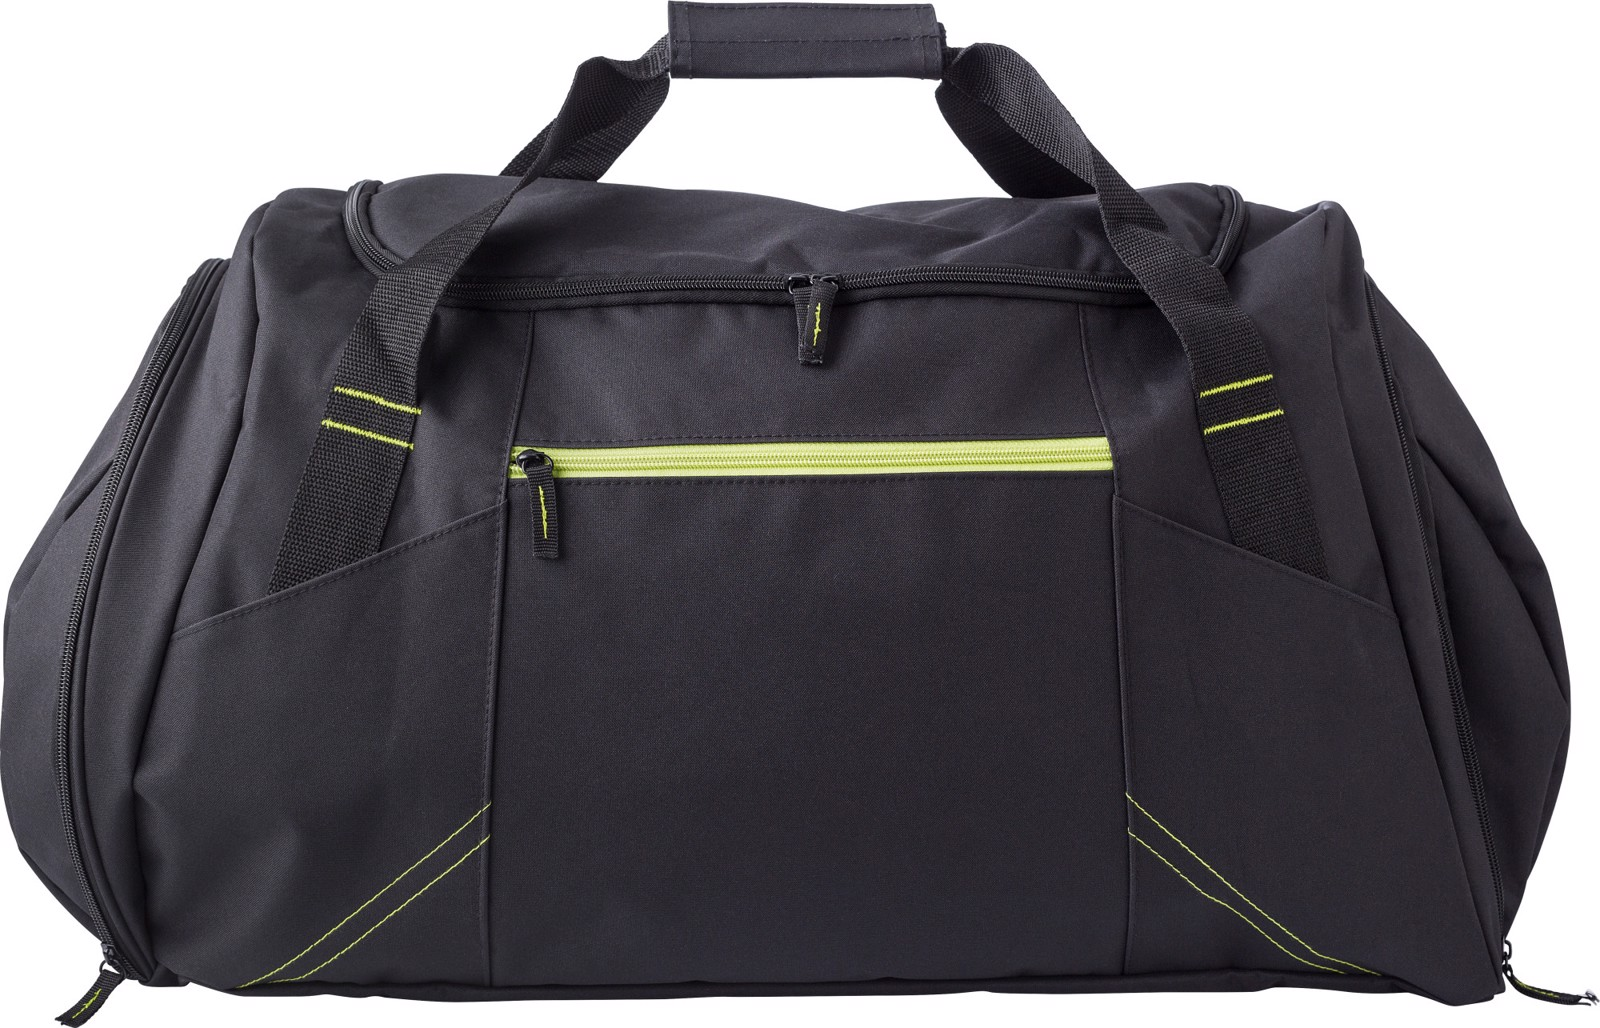 Polyester (300D) sports bag - Lime